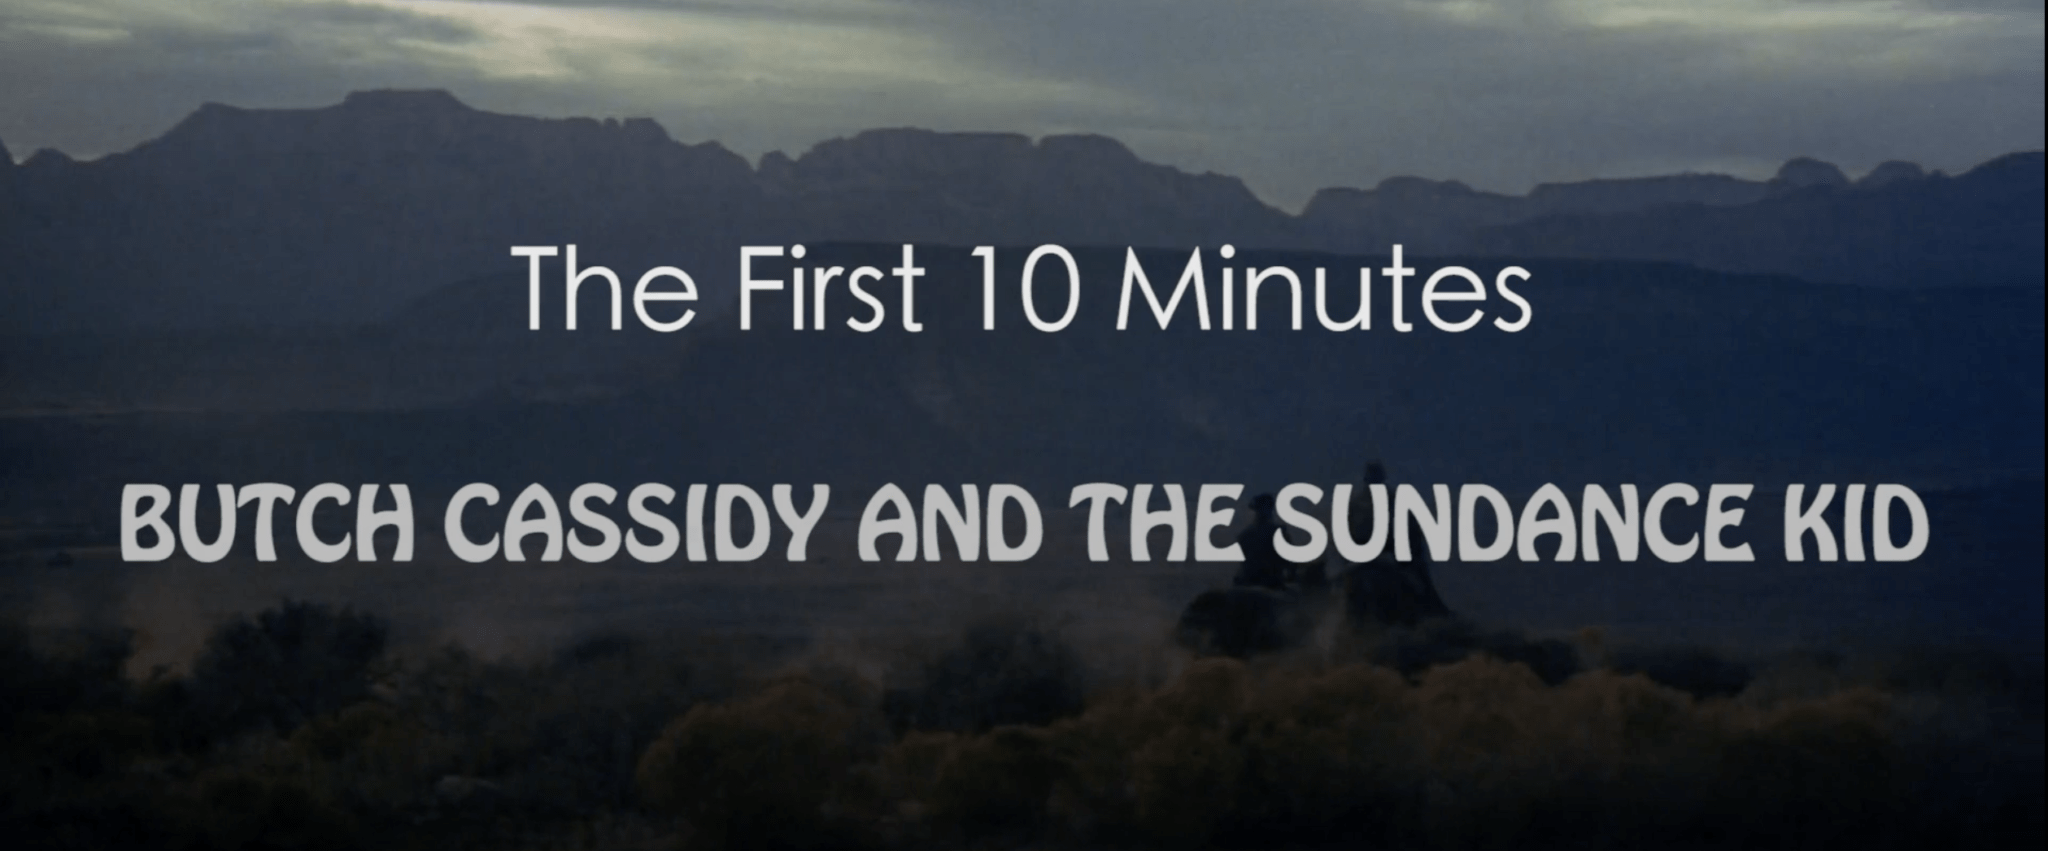 Butch Casiidy and The Sundance Kid - The First 10 Minutes - thescriptblog.com